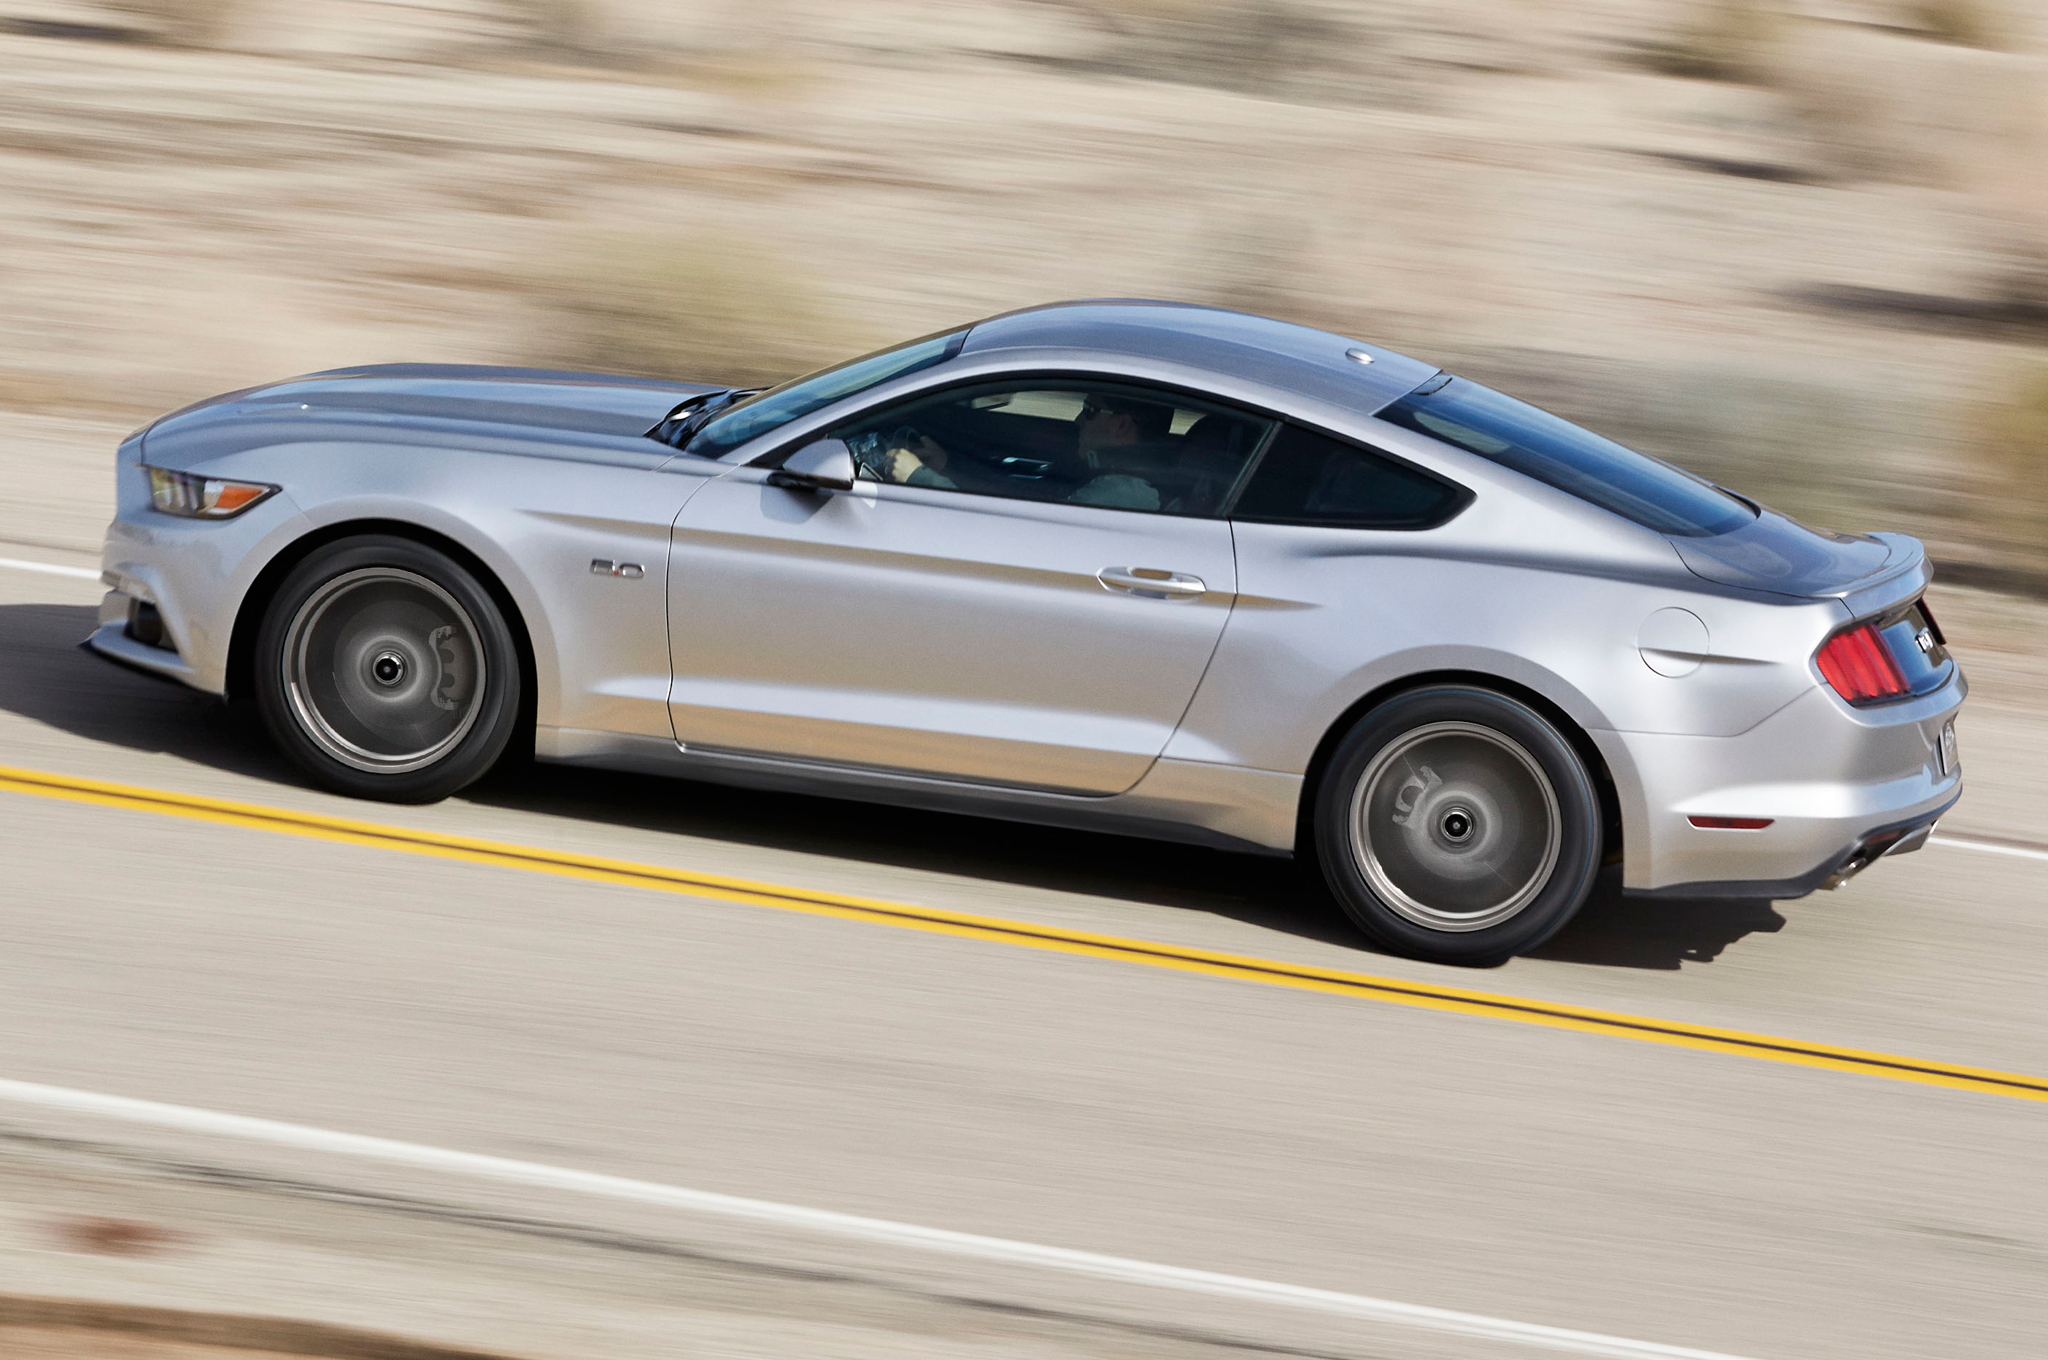 2015 Ford Mustang Exterior (Photo 3 of 30)